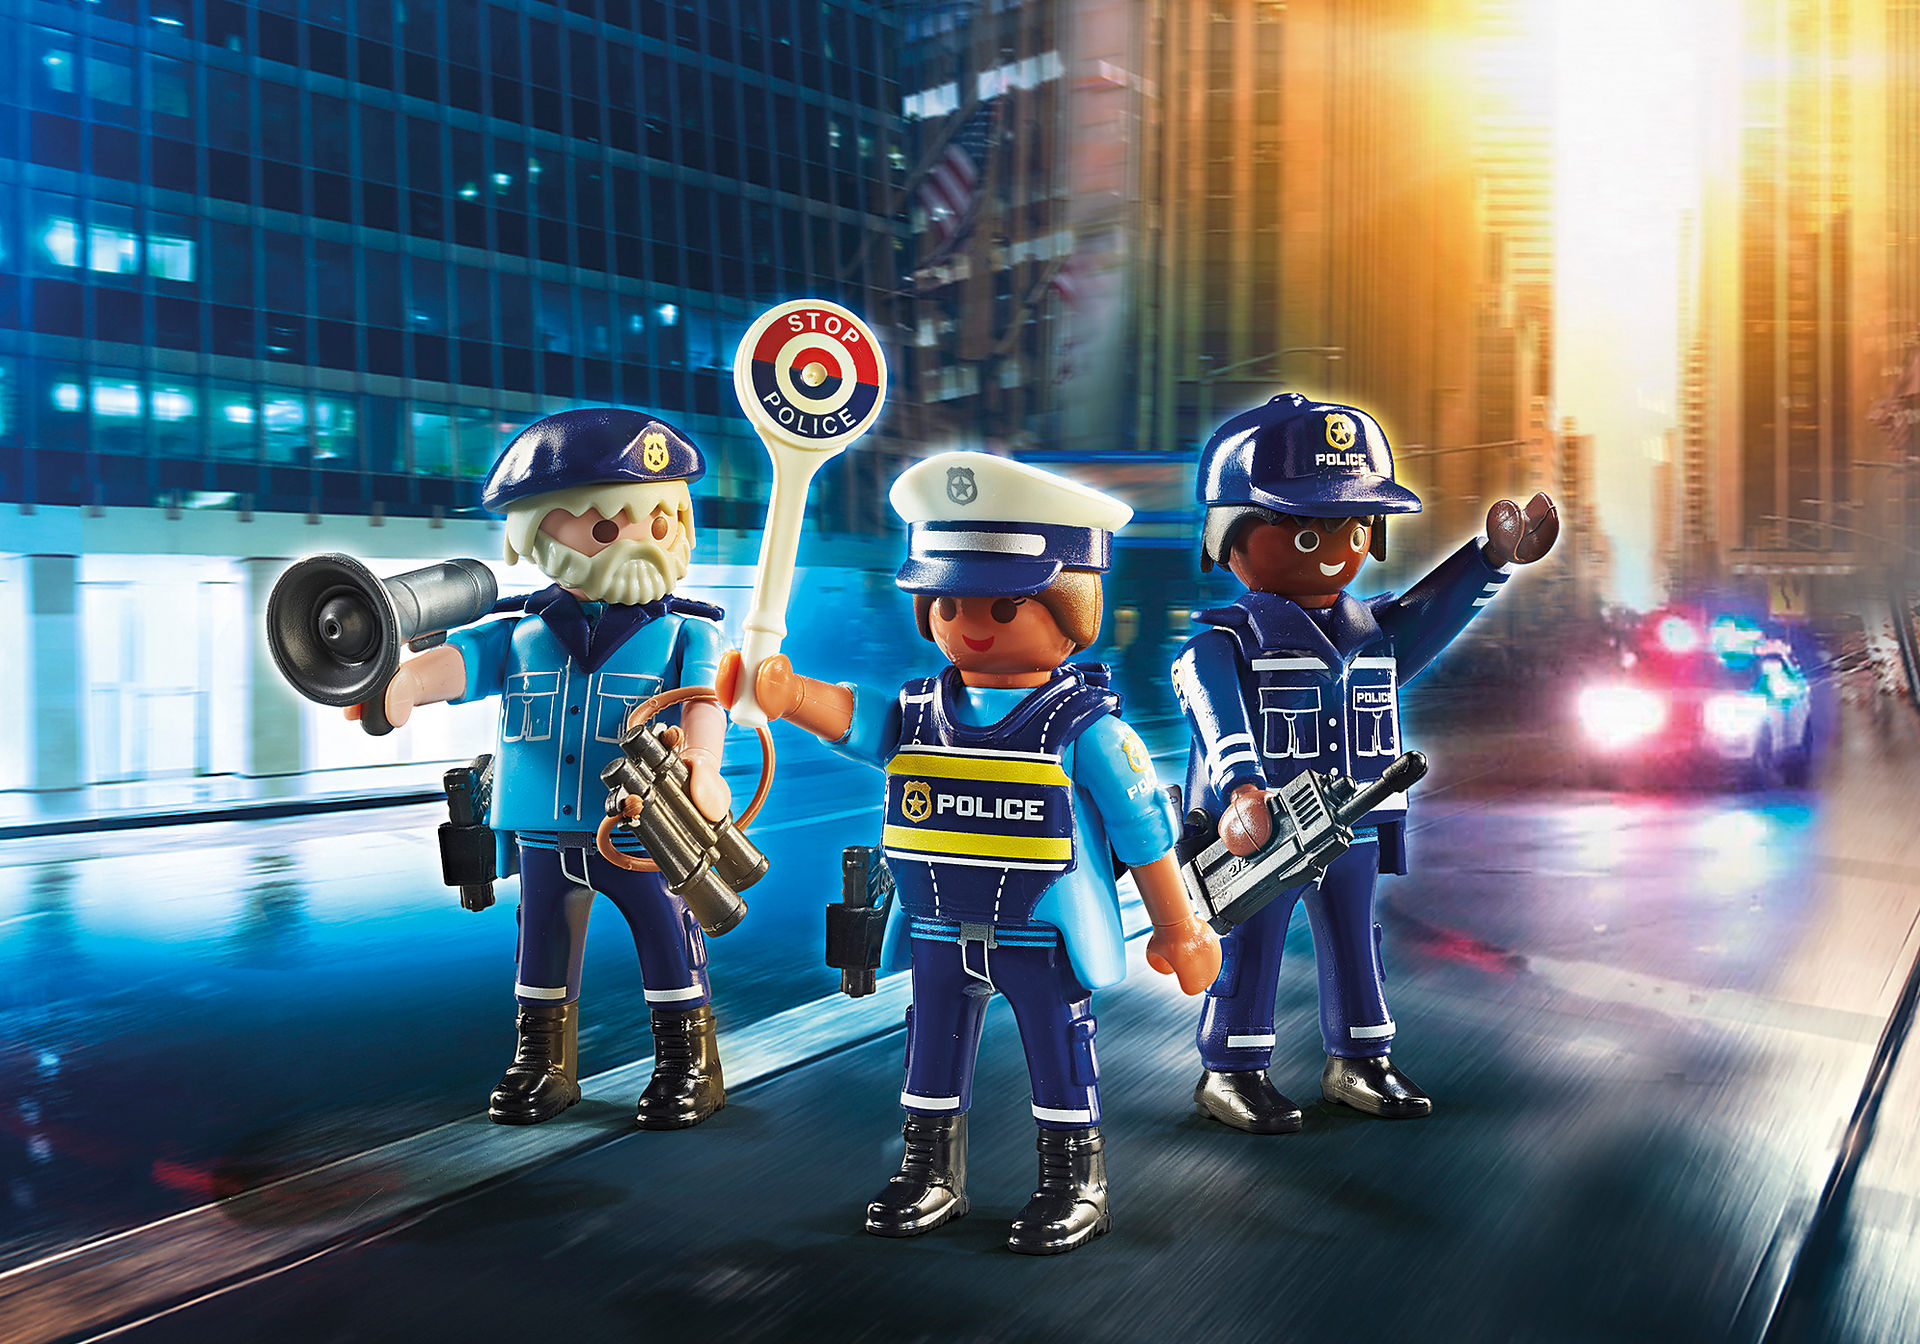 70669 Police Figure Set zoom image1